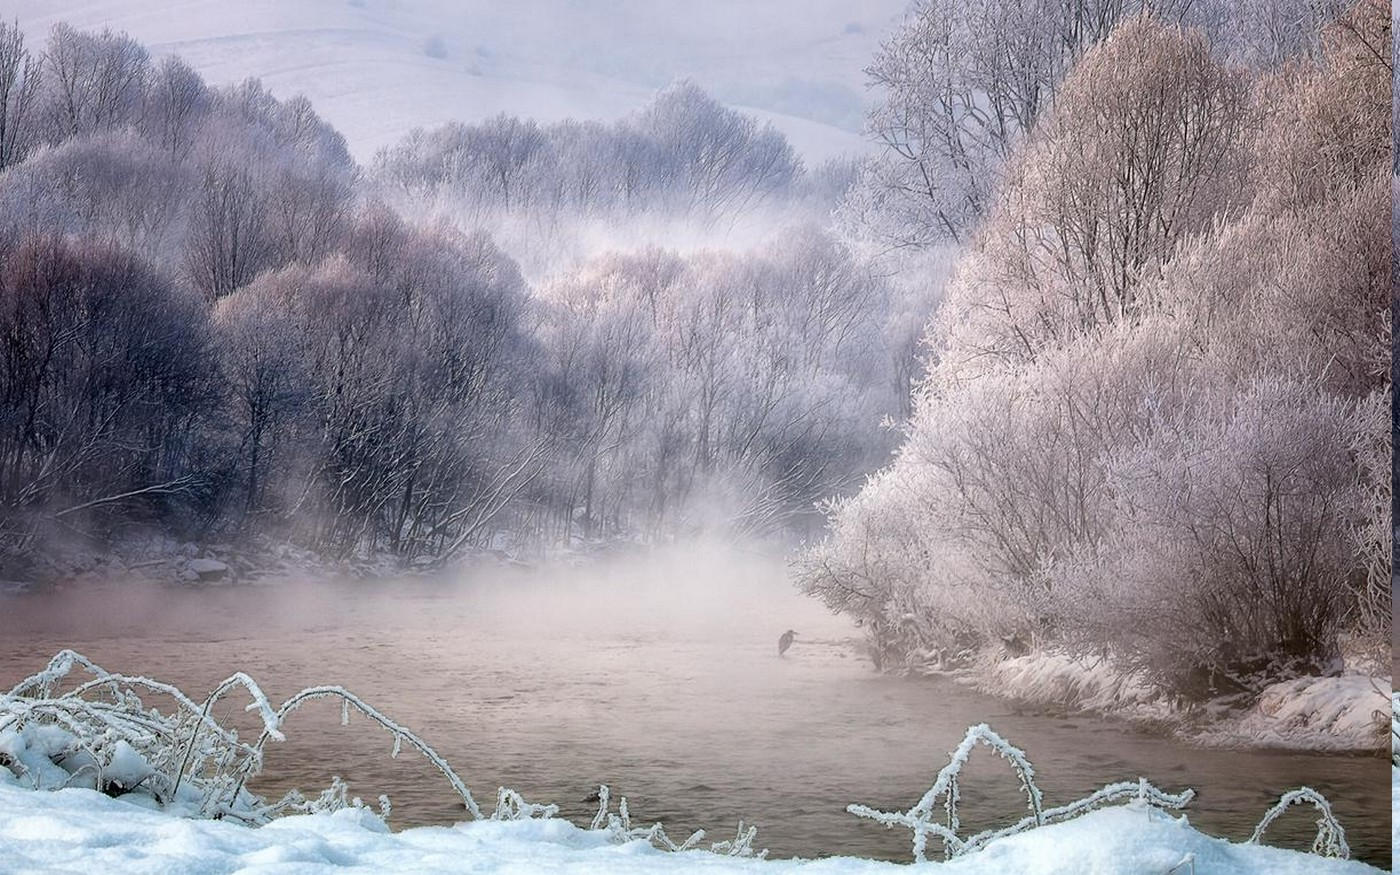 Bing Animated Wallpaper Nature Landscape Winter Mist River Trees Birds Snow